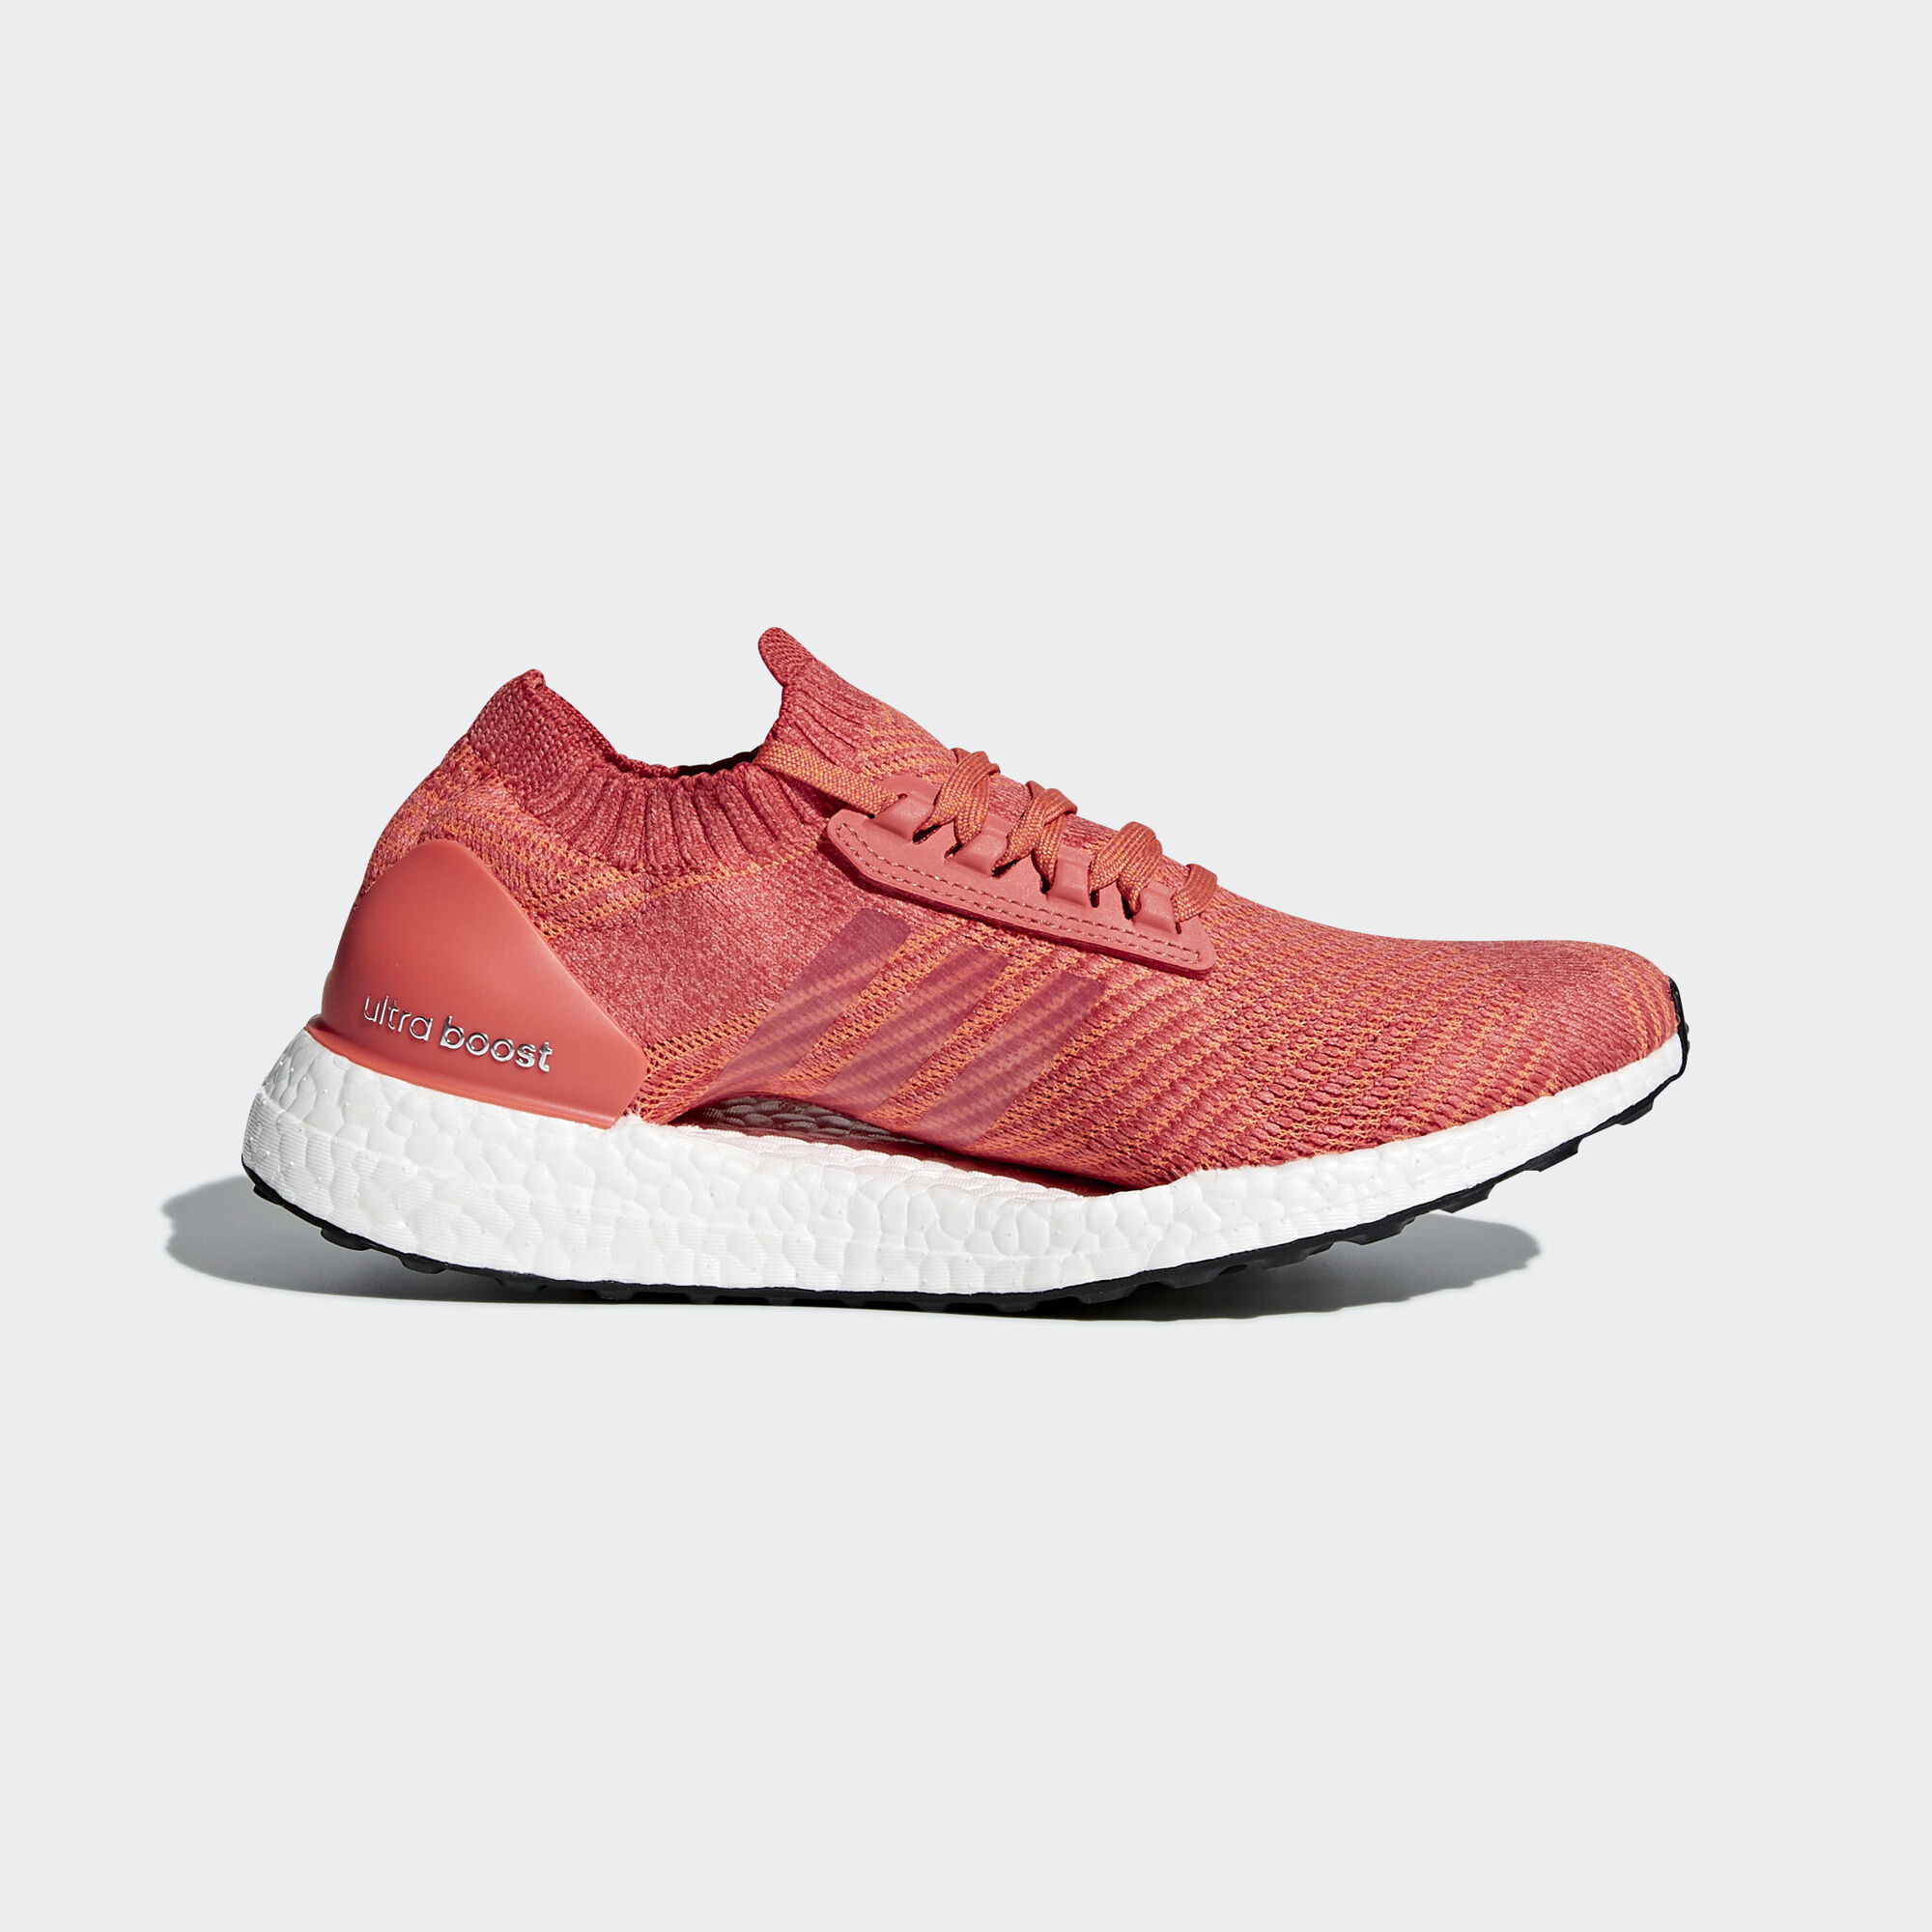 sports shoes 398fa 3990b adidas - Ultraboost X Shoes Trace ScarletCrystal WhiteTrace Orange  BB6160. Women Running